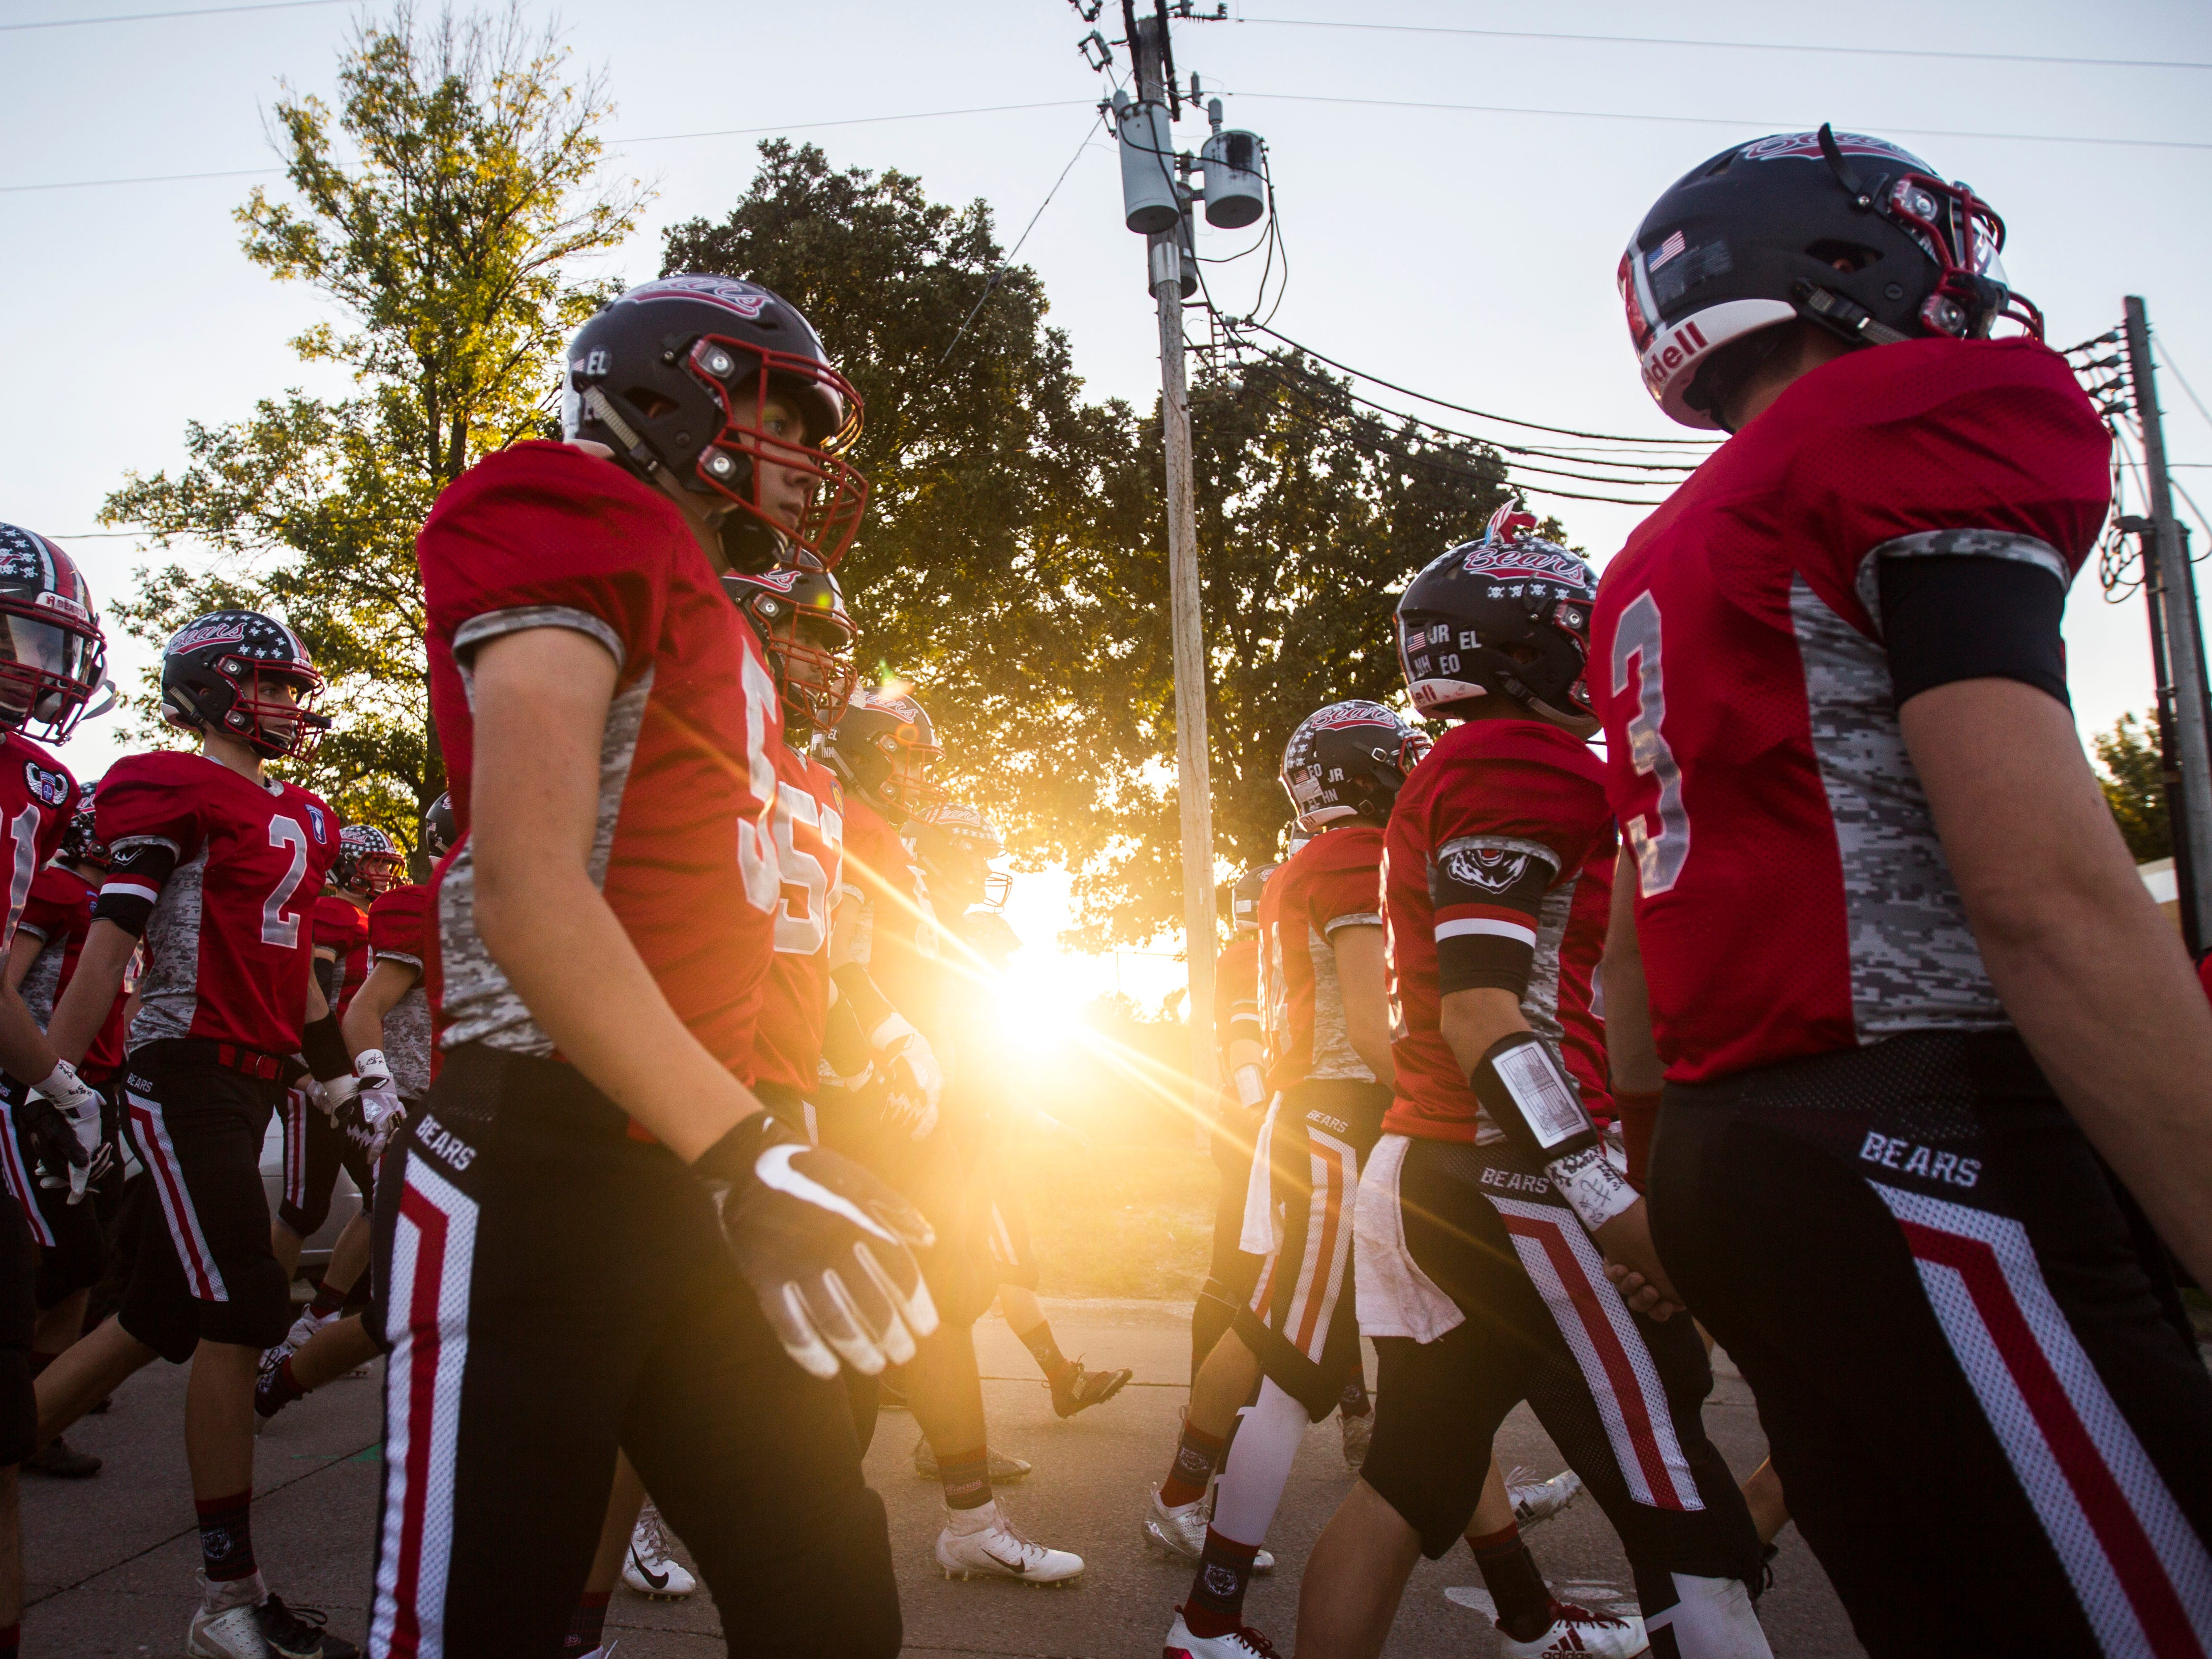 West Branch players walk towards the field before a Class 1A varsity football game on Friday, Sept. 14, 2018, at the Little Rose Bowl in West Branch.